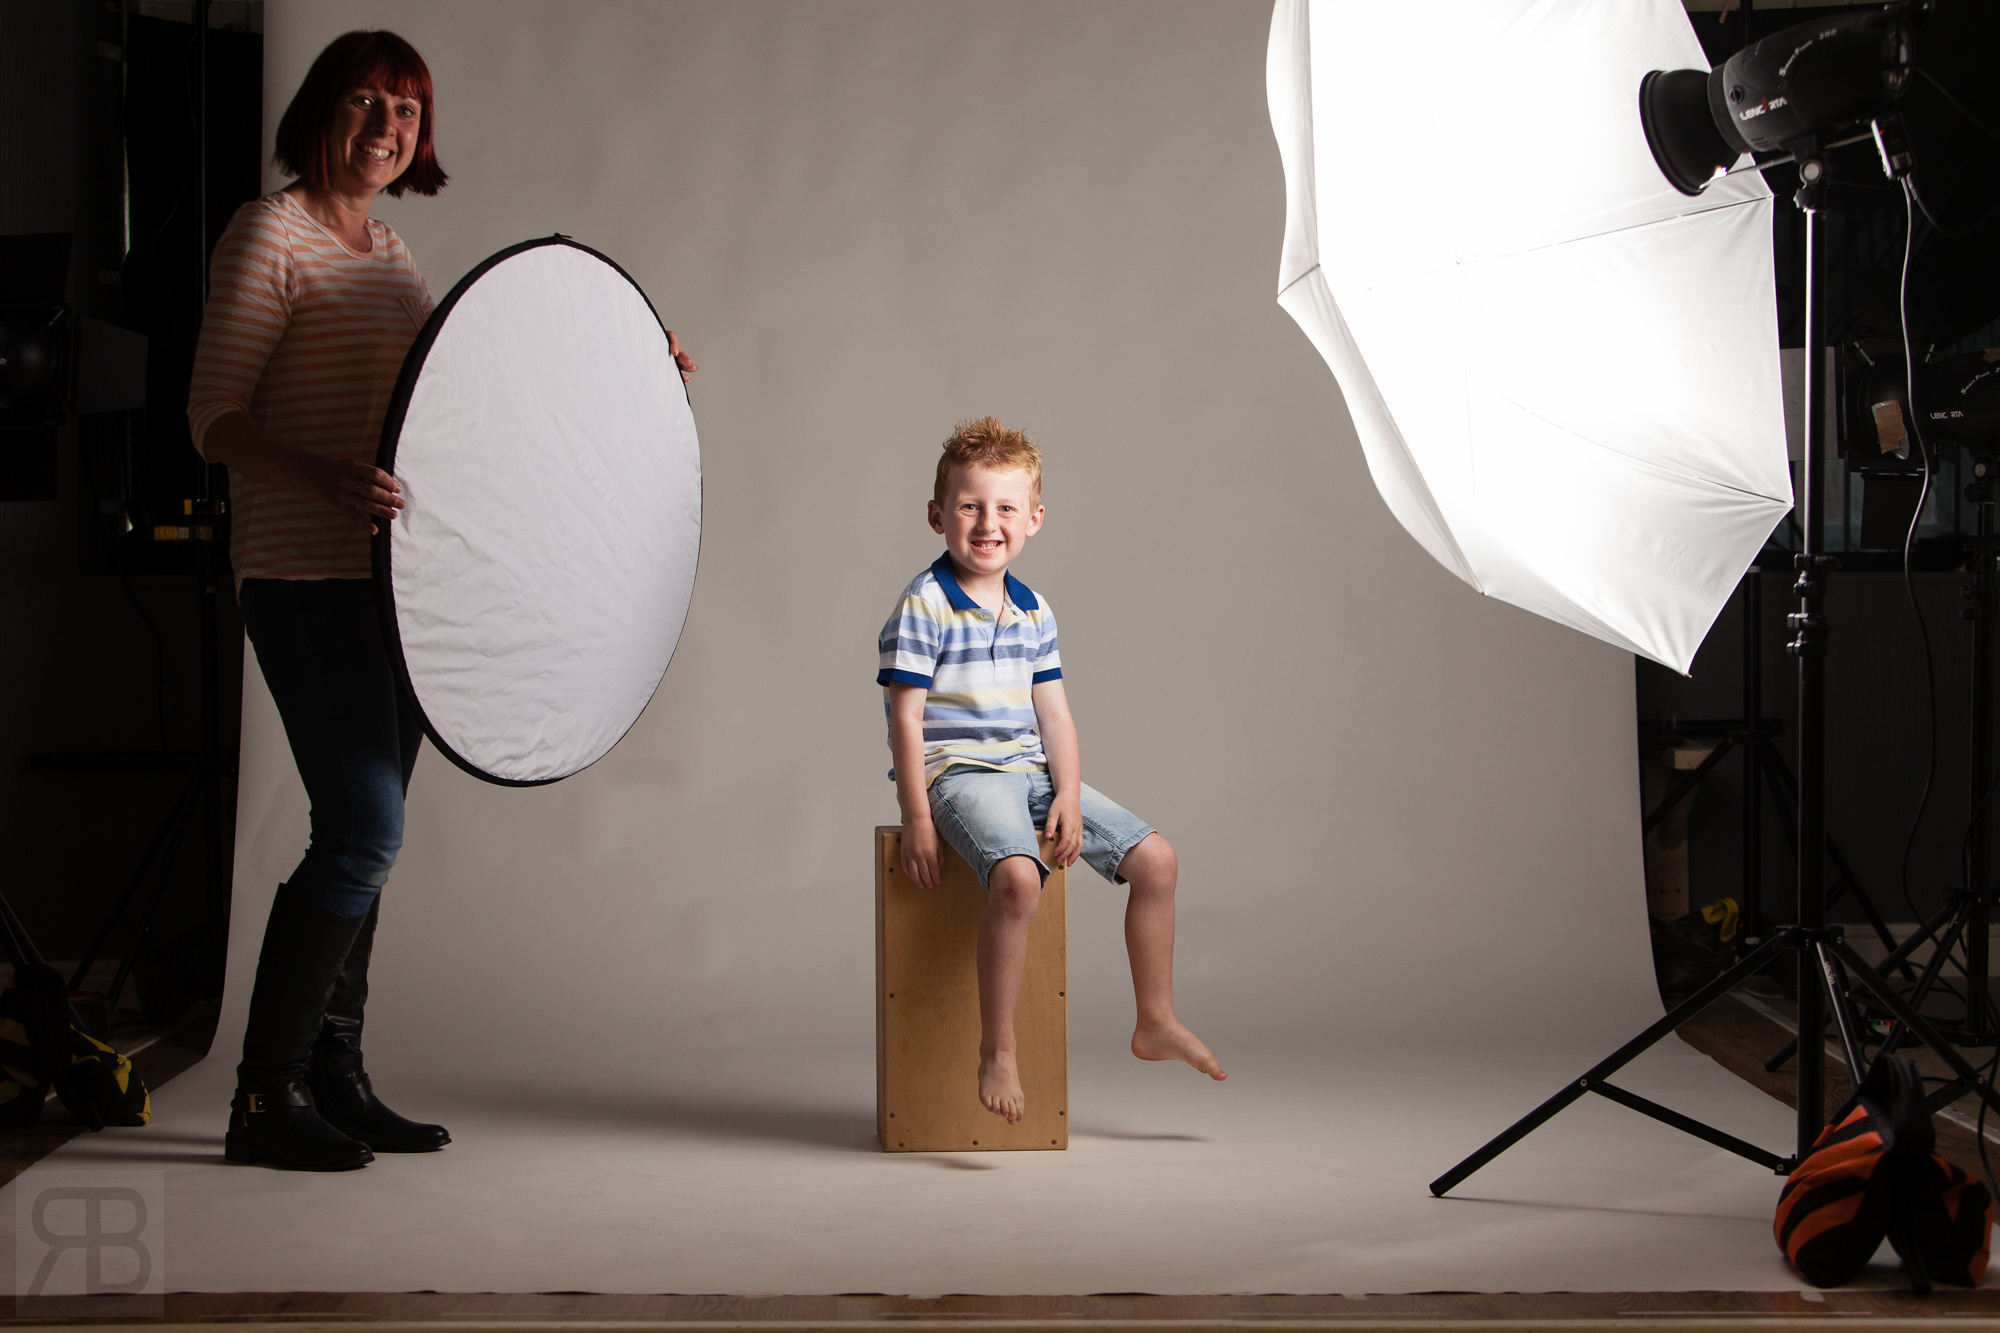 Esther helping out holding a reflector.